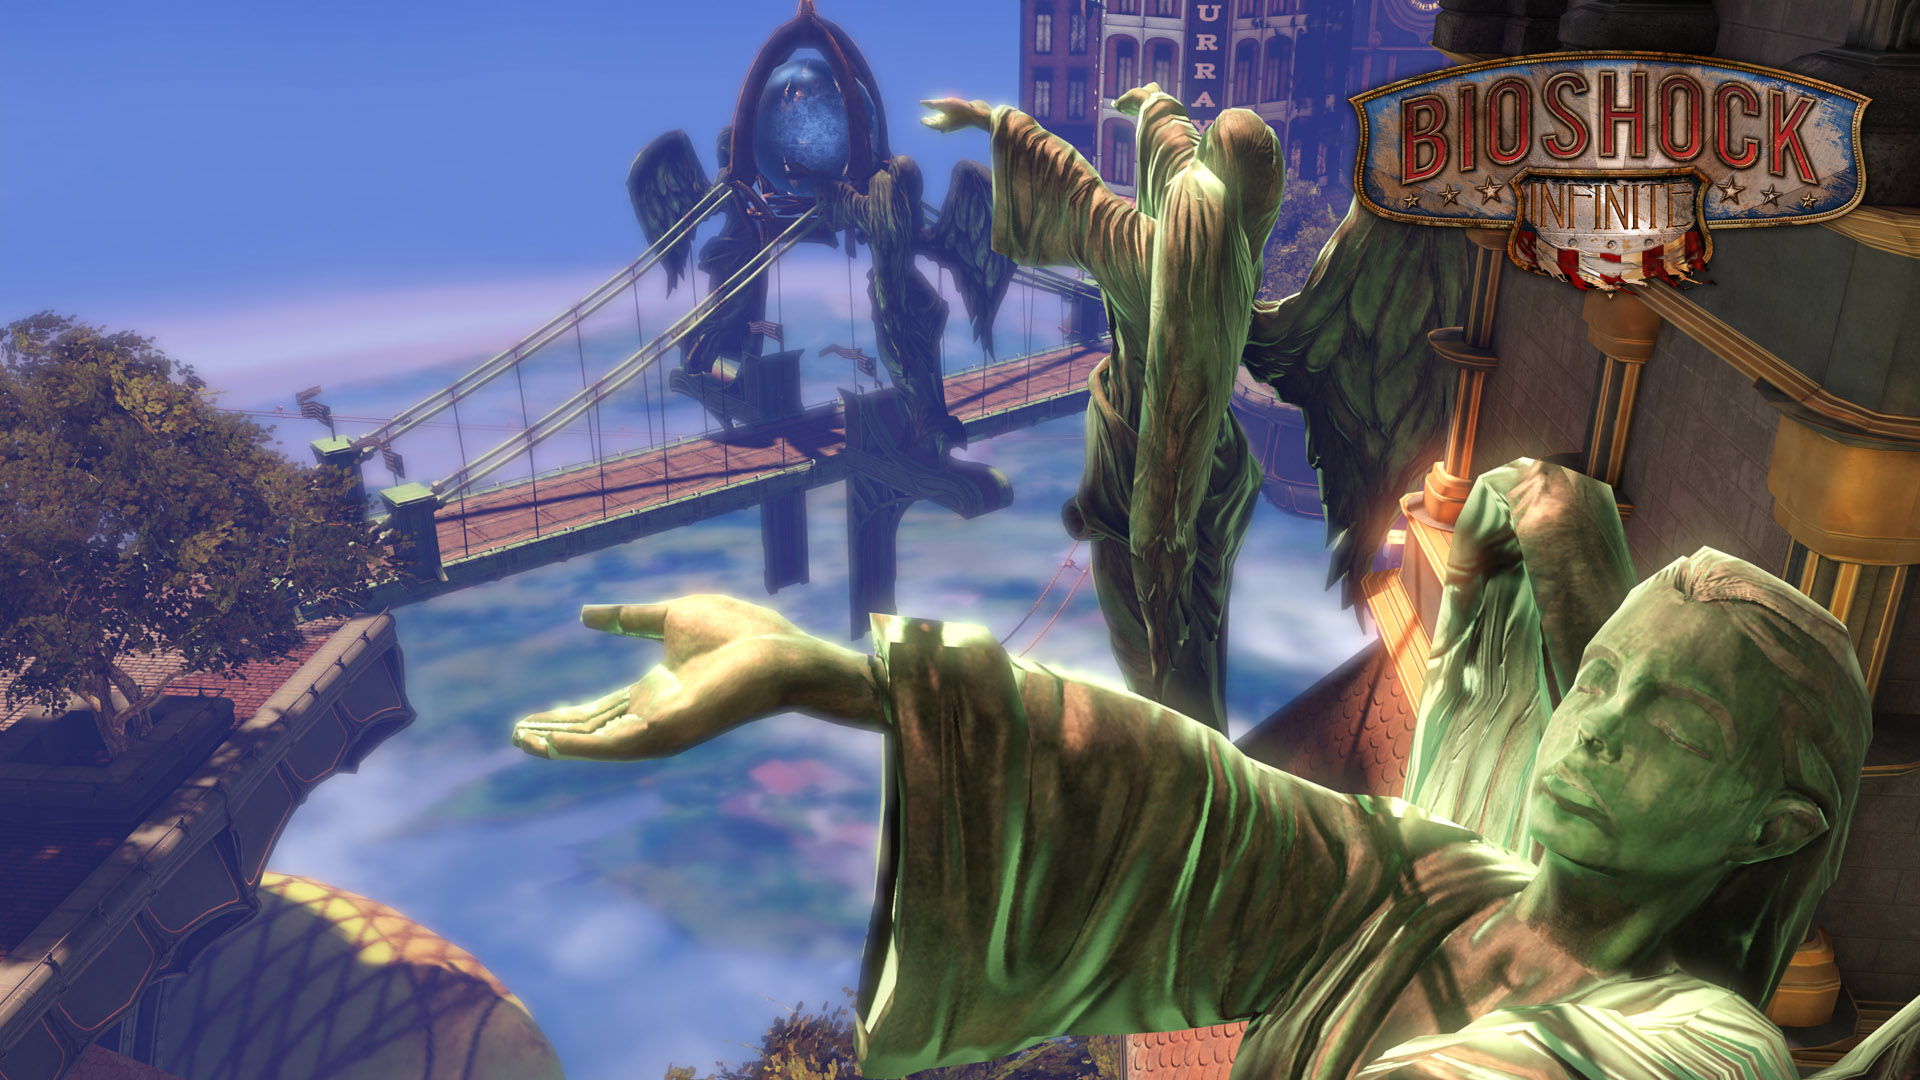 Check Out Some Awesome Bioshock Infinite Wallpapers